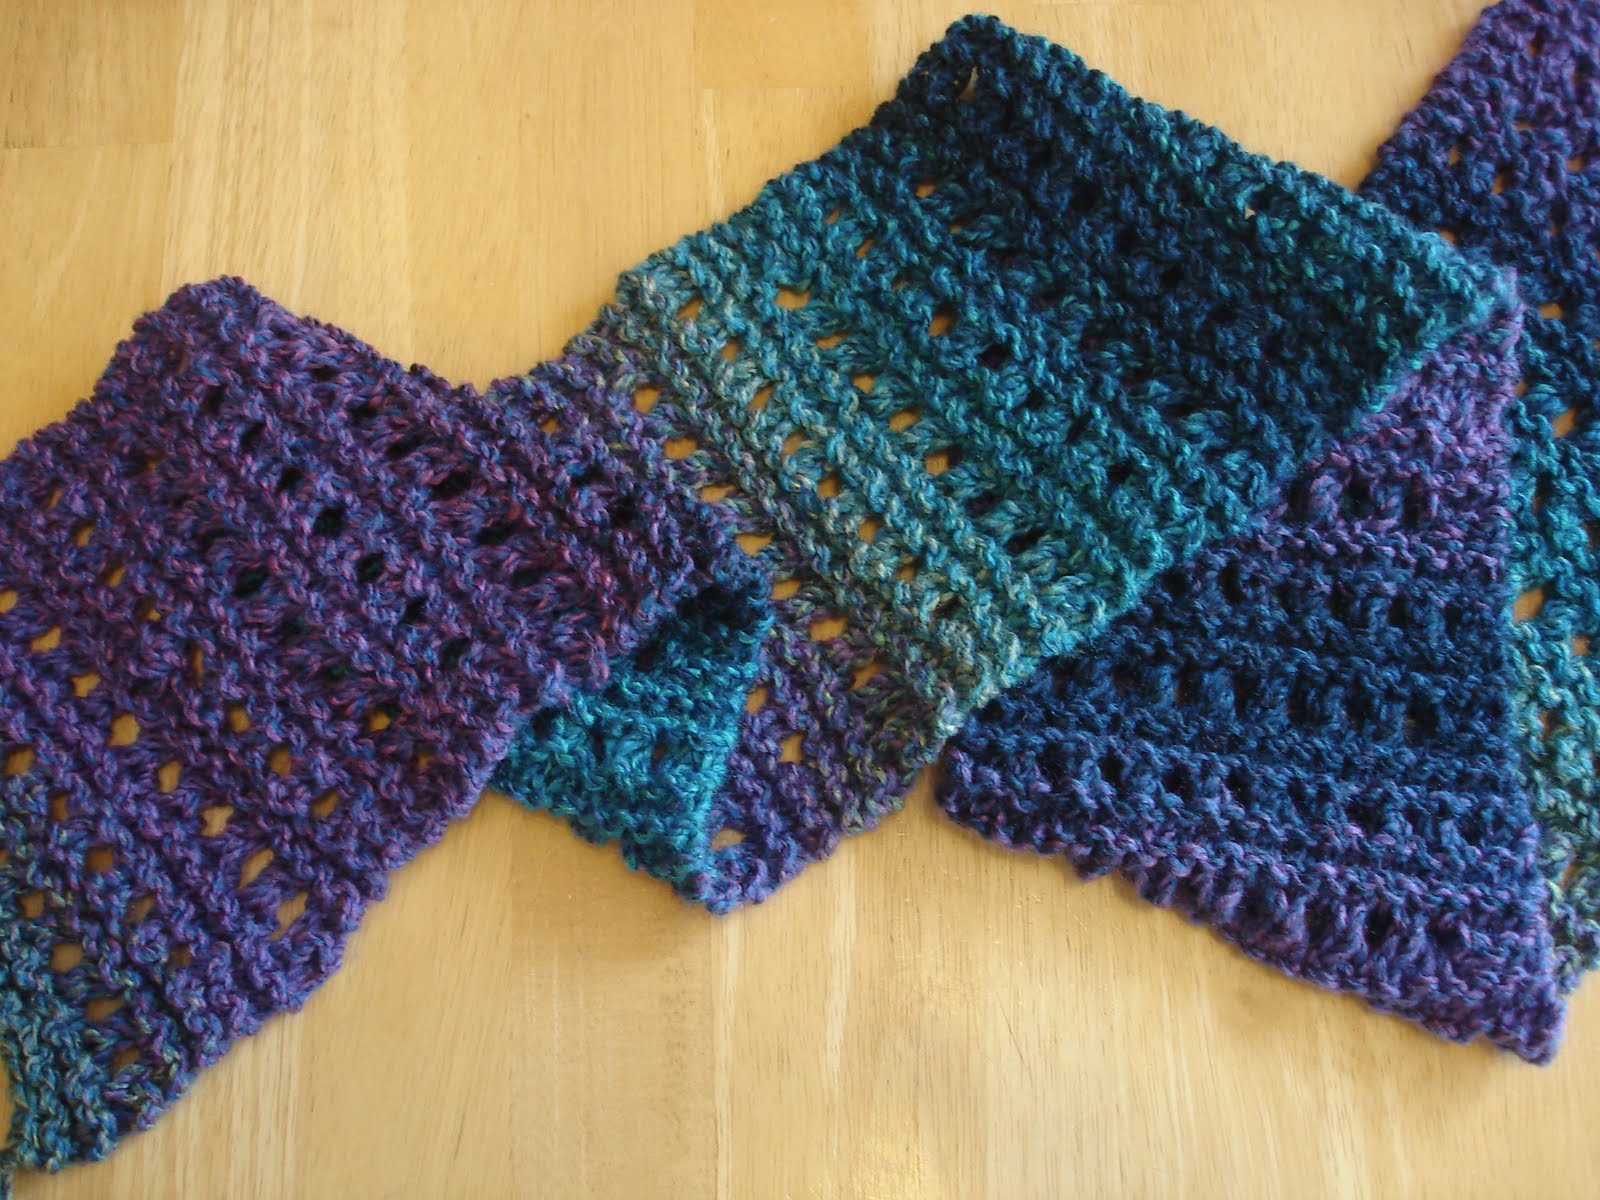 Knitting Pattern Free Scarf : Fiber Flux: Free Knitting Patterns